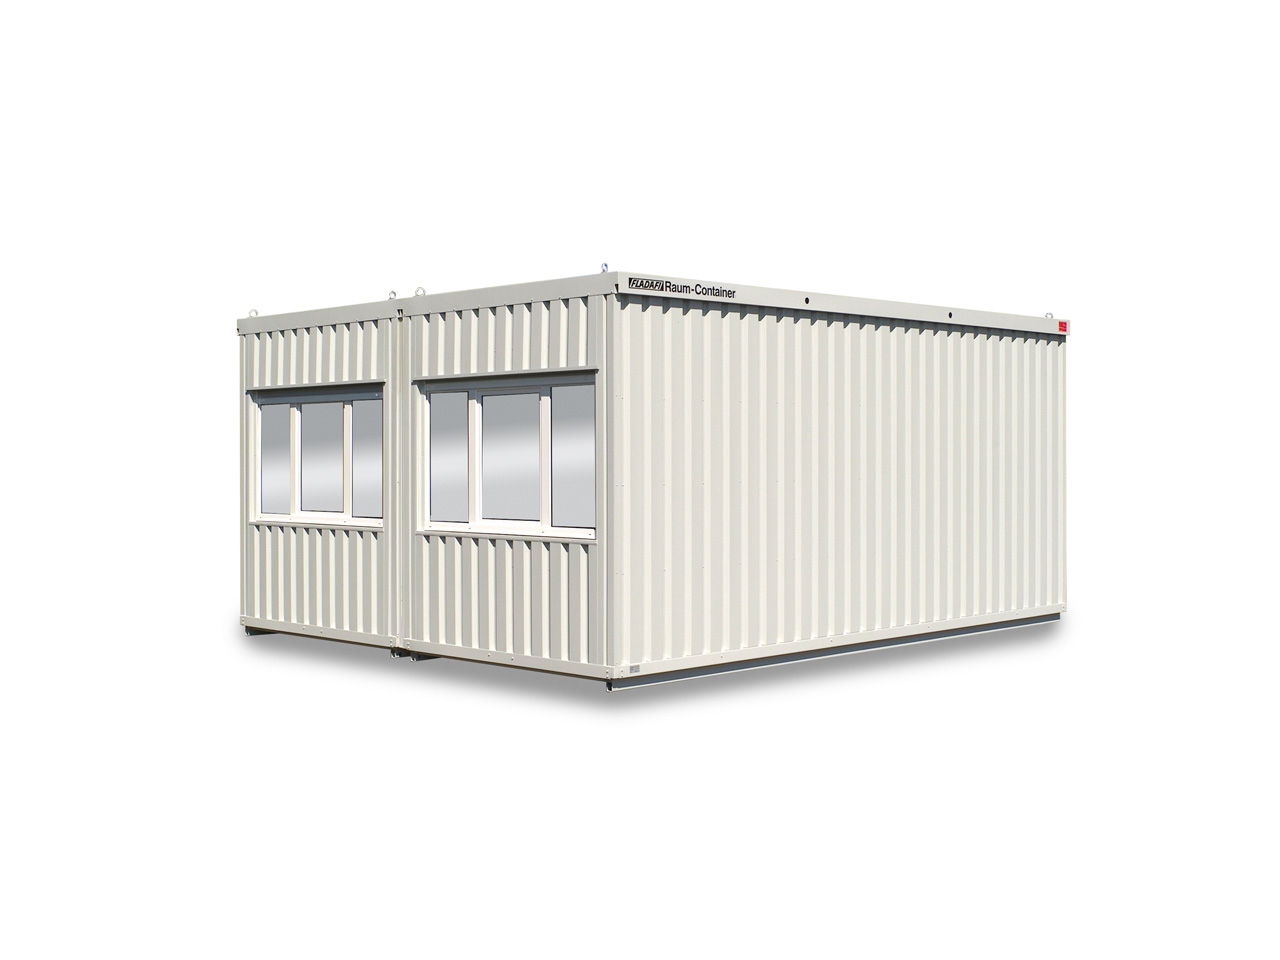 fladafi containerbau rc kombination 6811 container. Black Bedroom Furniture Sets. Home Design Ideas